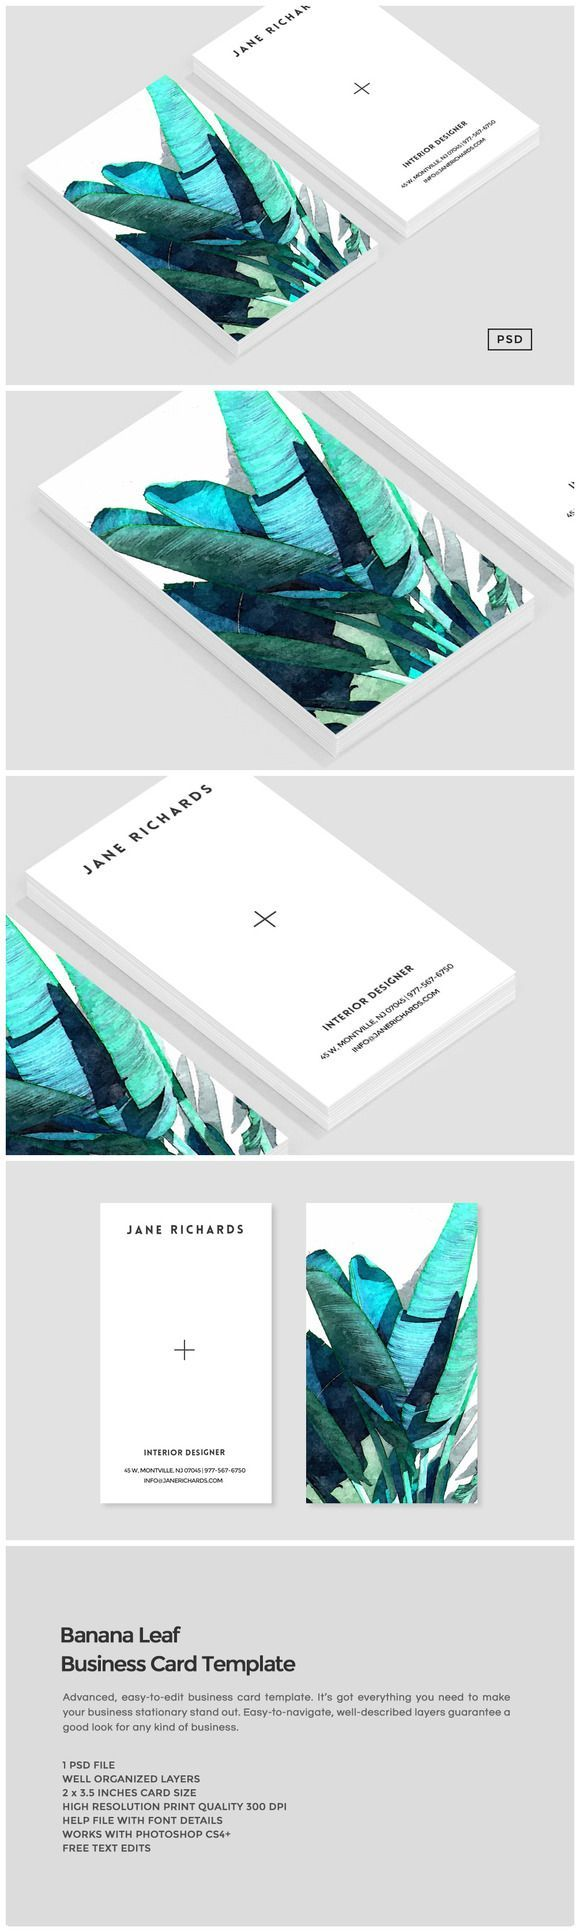 Banana leaf business card template banana leaves card templates banana leaf business card template introducing our latest banana leaf business card template perfect for alramifo Image collections